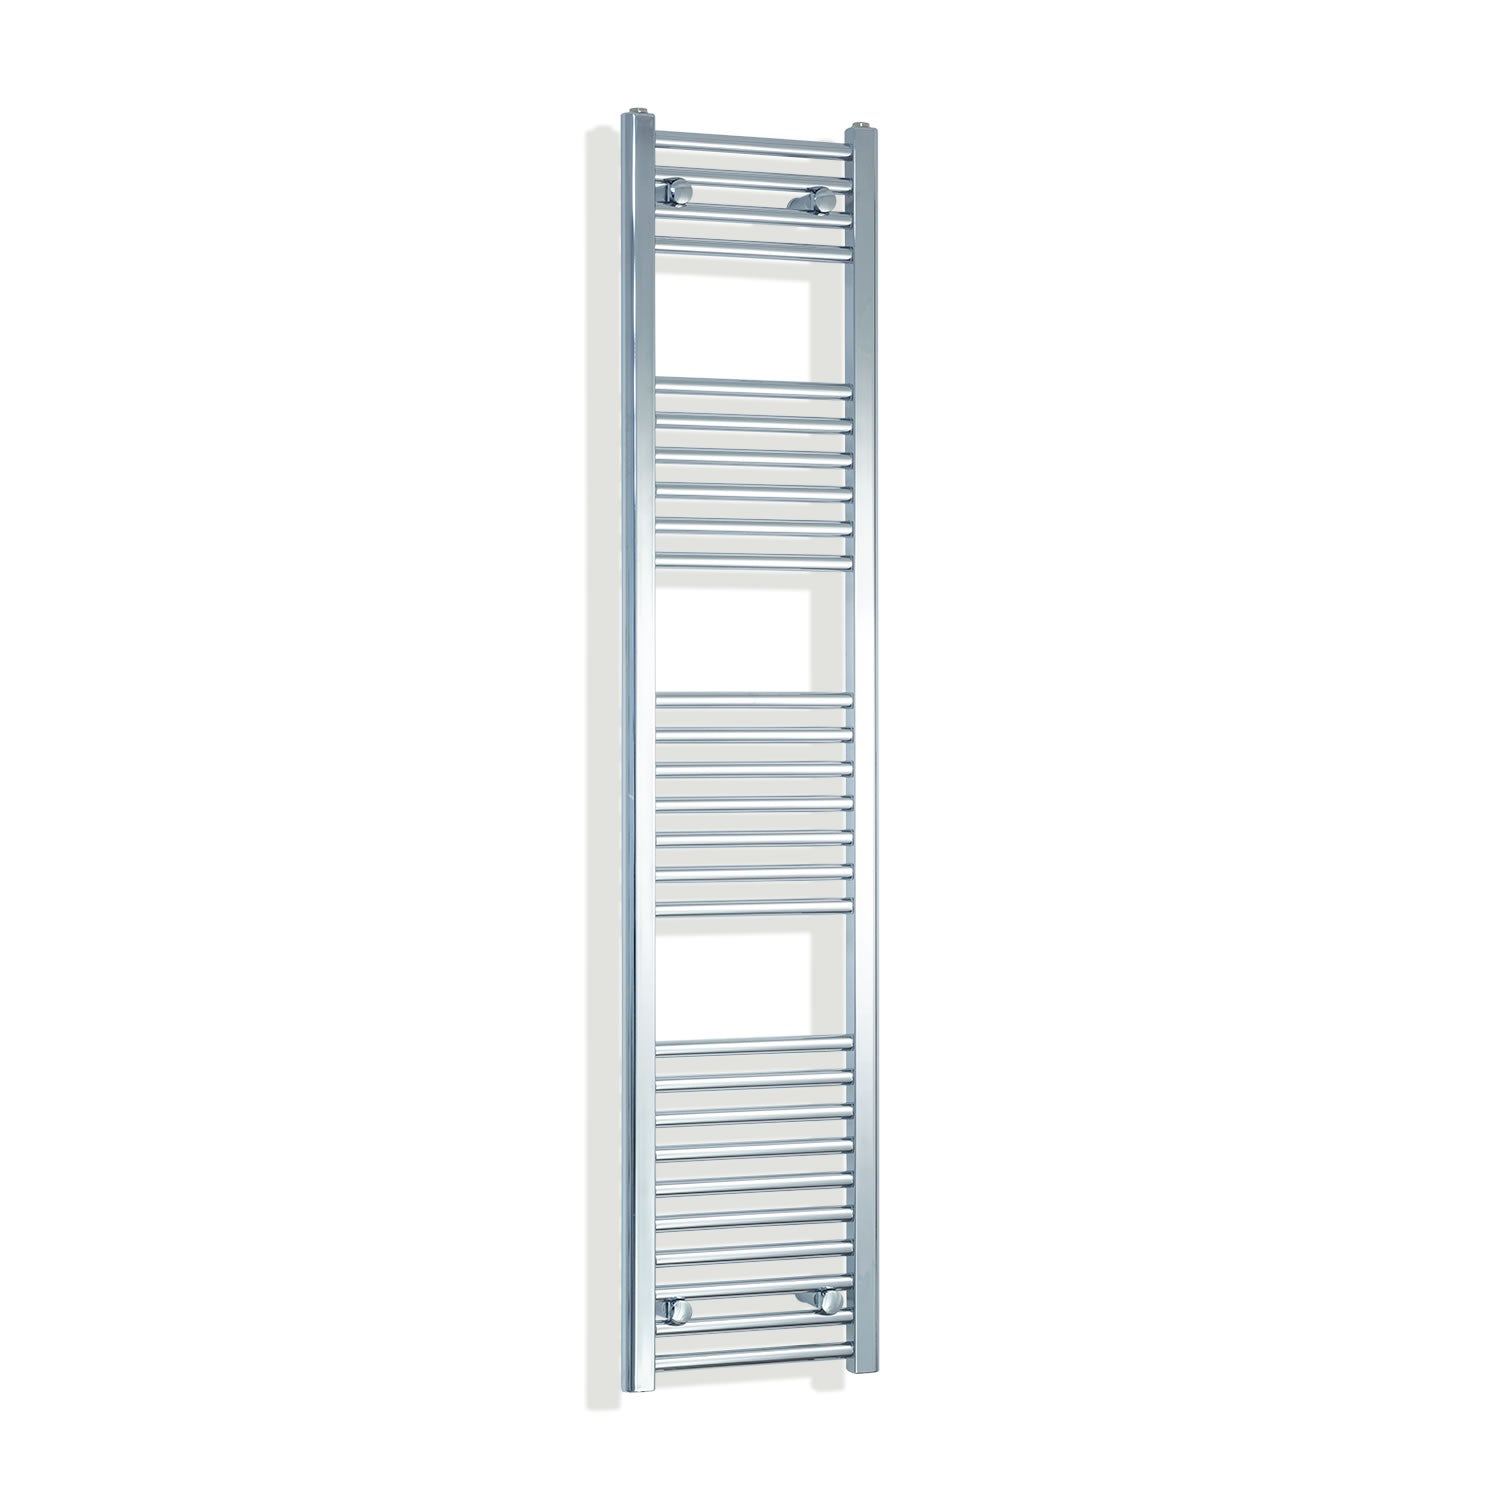 350mm Wide 1600mm High Chrome Towel Rail Radiator